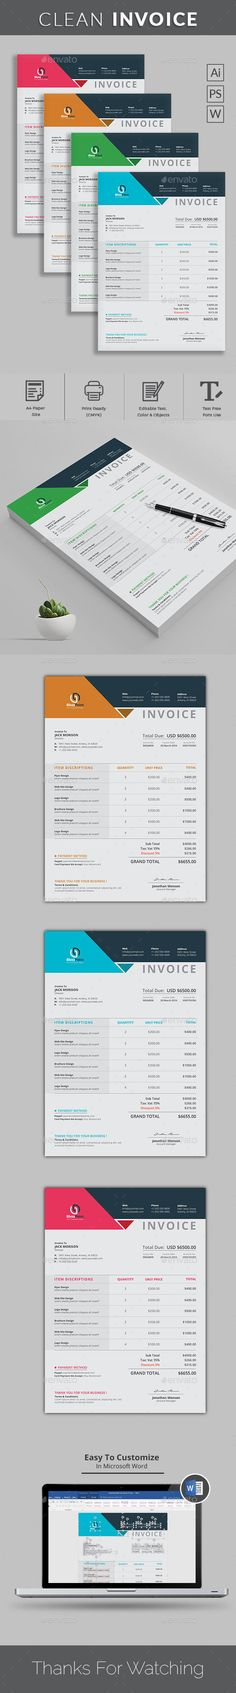 Invoice Template, Web design tutorials and Logos - web design invoice